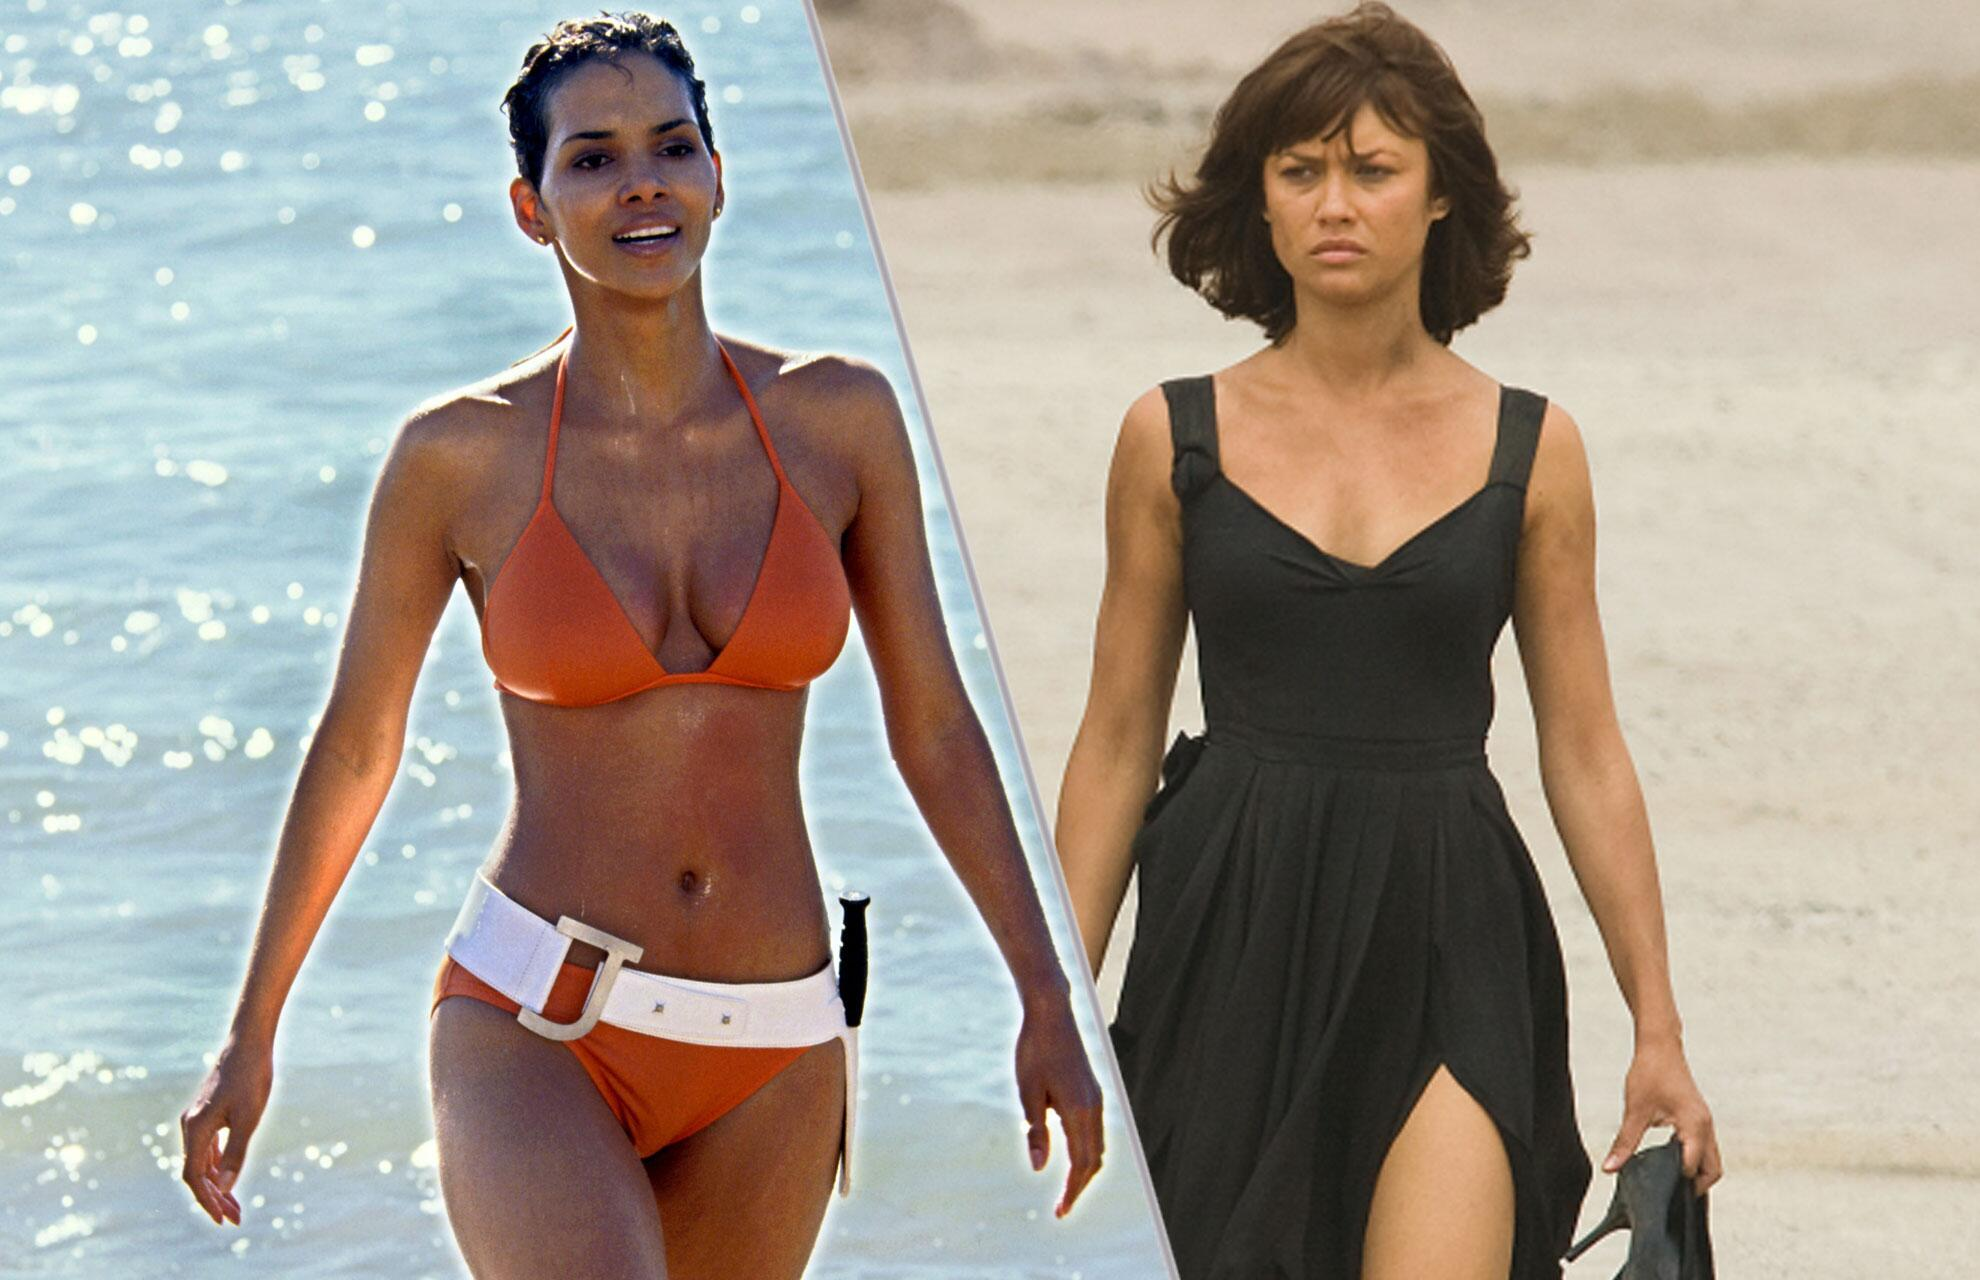 Bild zu Hale Berry, Olga Kurylenko, James Bond